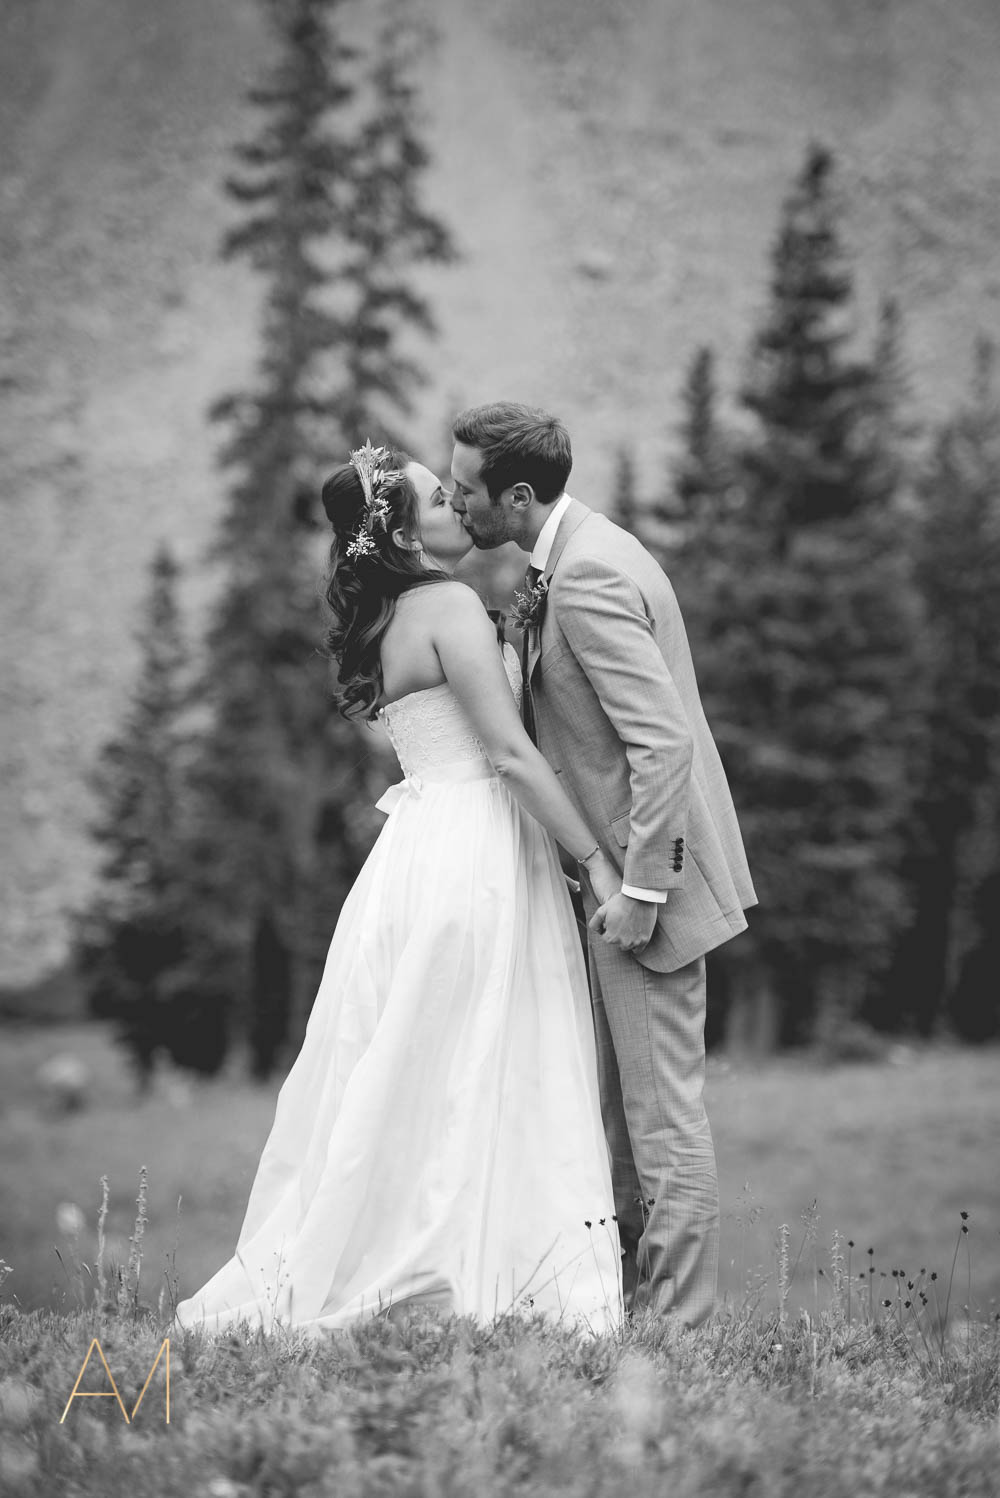 AshleighMillerWeddings-MadeleineAaron-Wedding-ArapahoeBasin-Colorado-1785.jpg